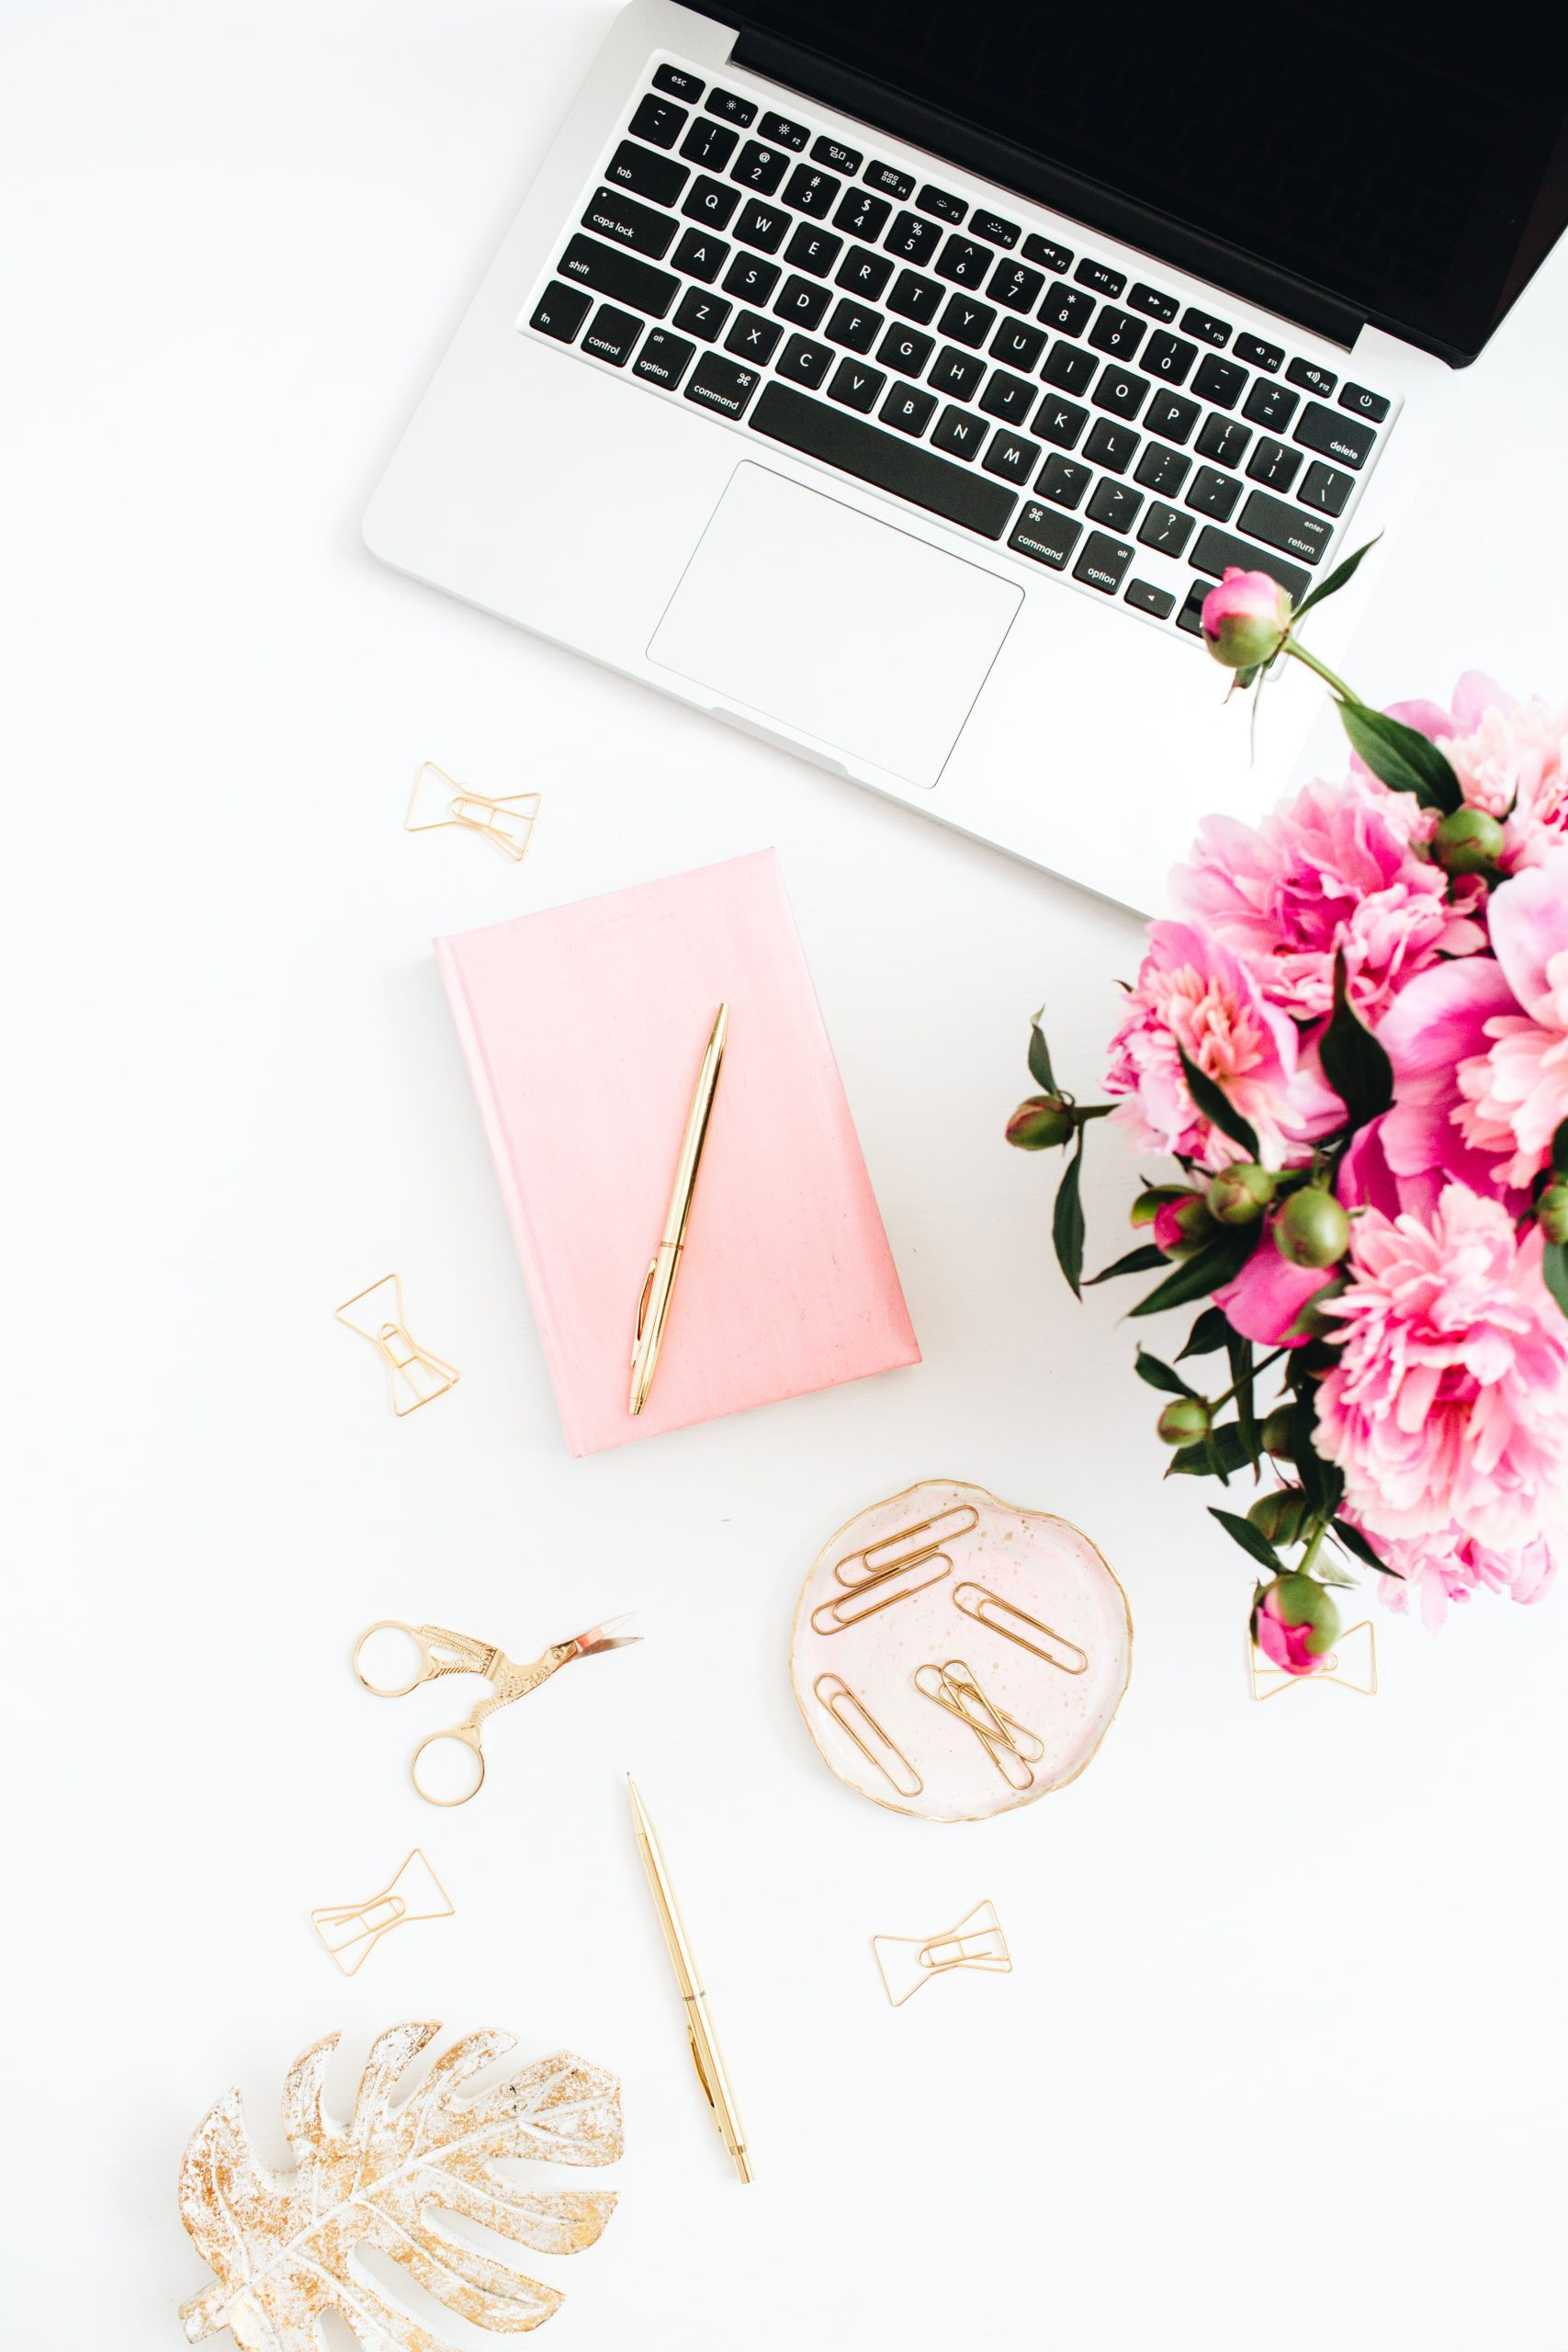 The Truths About Blogging and How to Stay Focused and Motivated